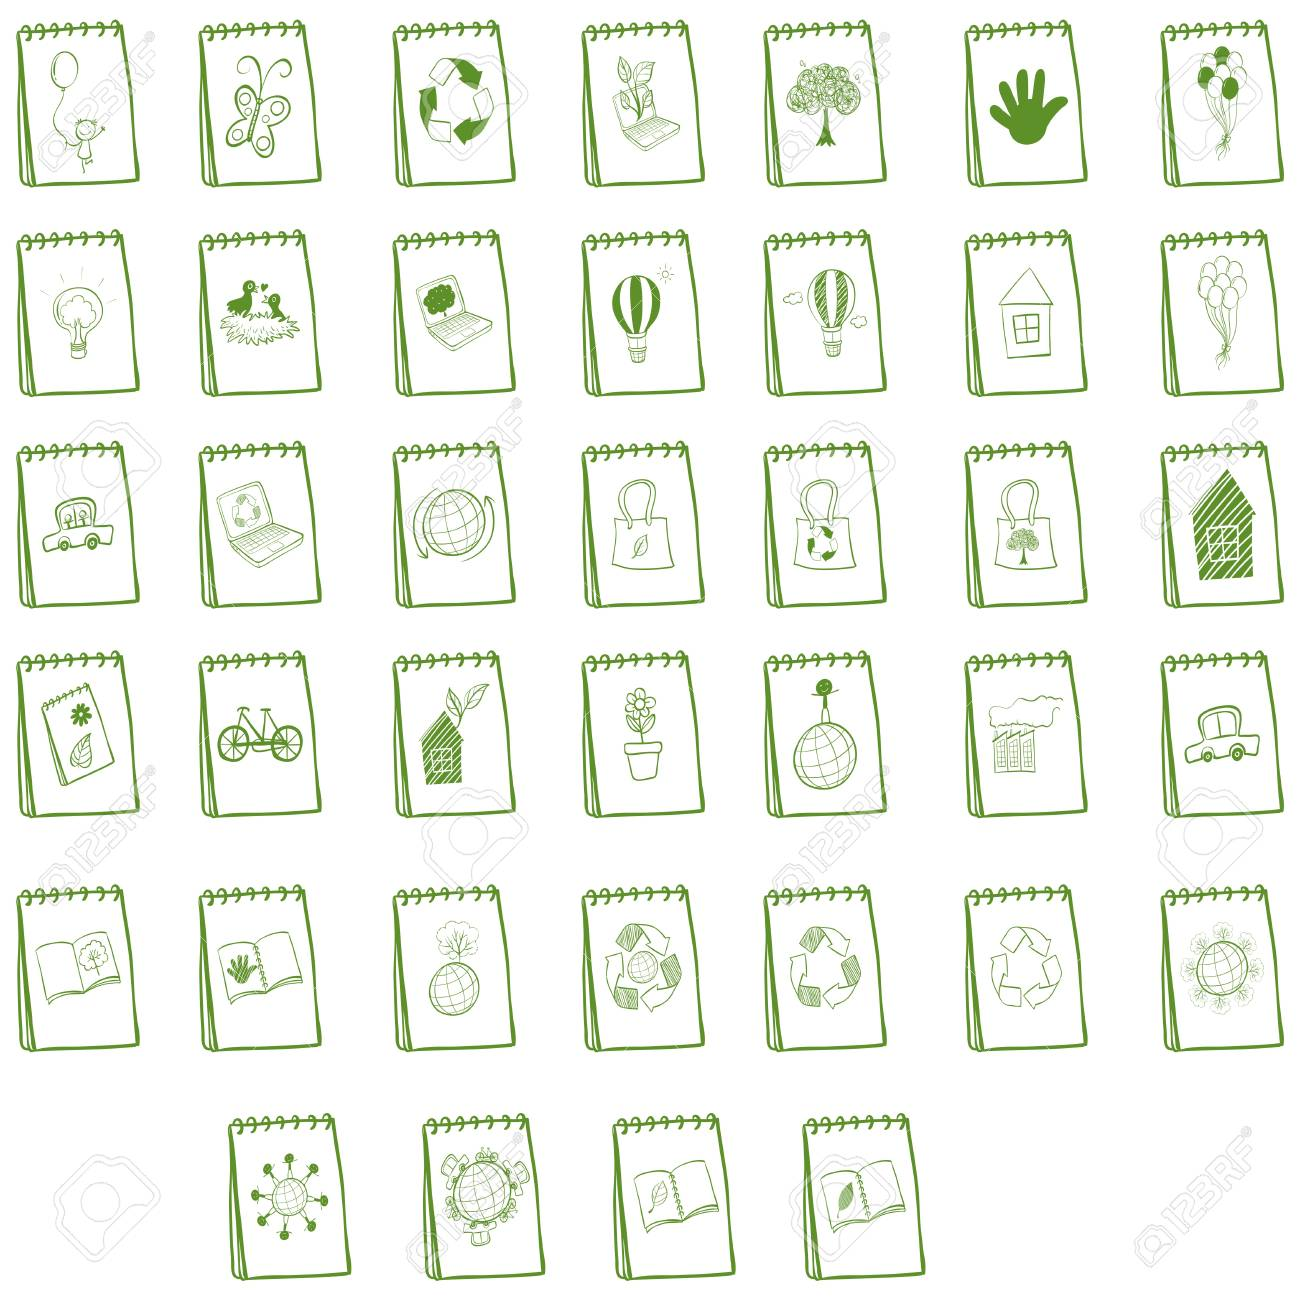 Illustration of the notebooks with eco-friendly logo designs on a white background Stock Vector - 19301749